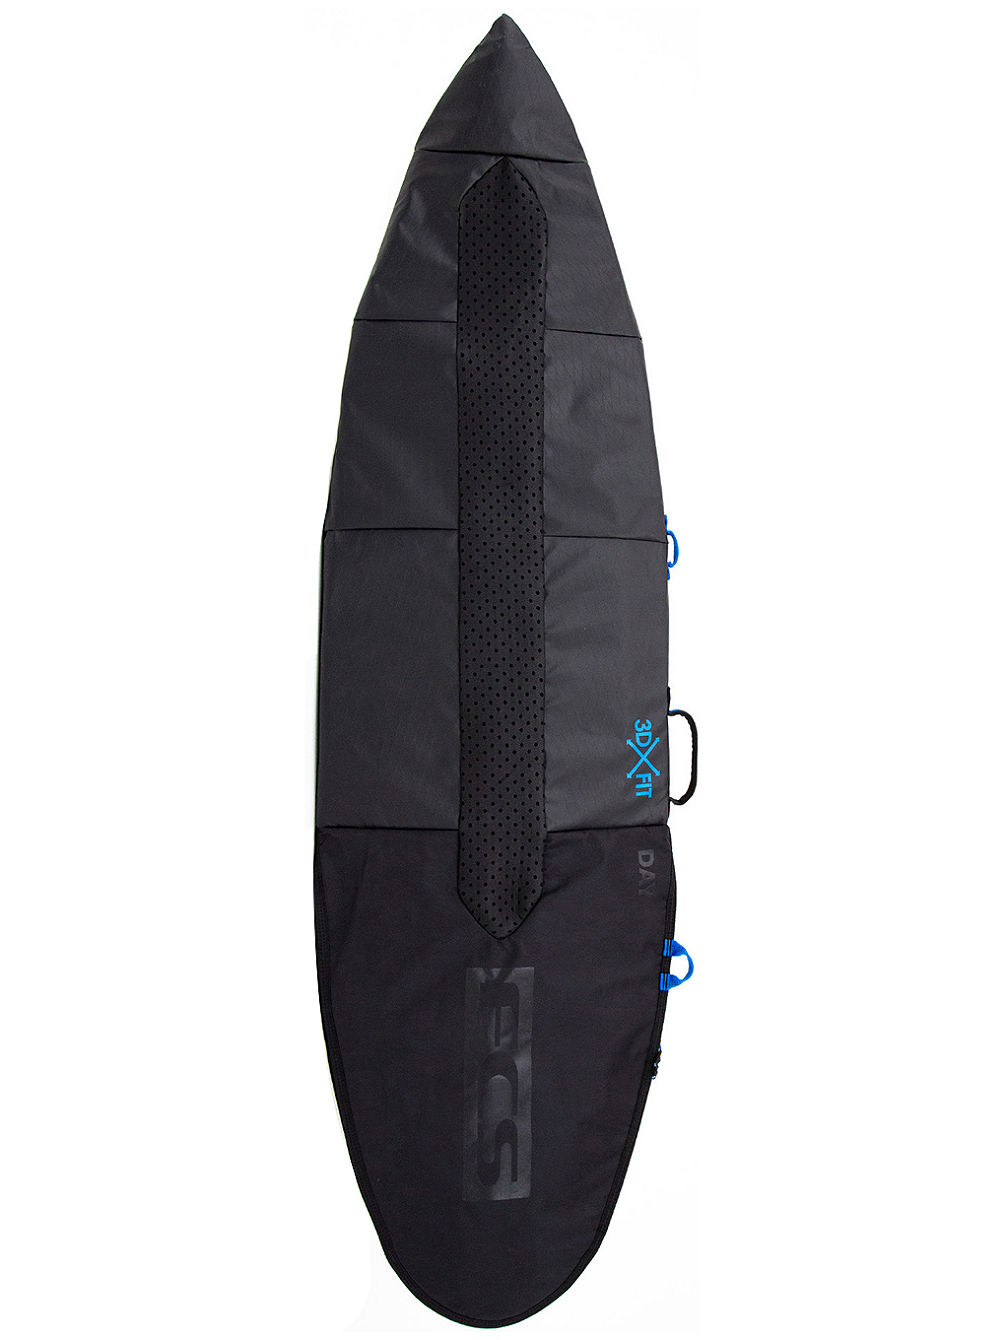 Day All Purpose 6'3 Surfboard Bag